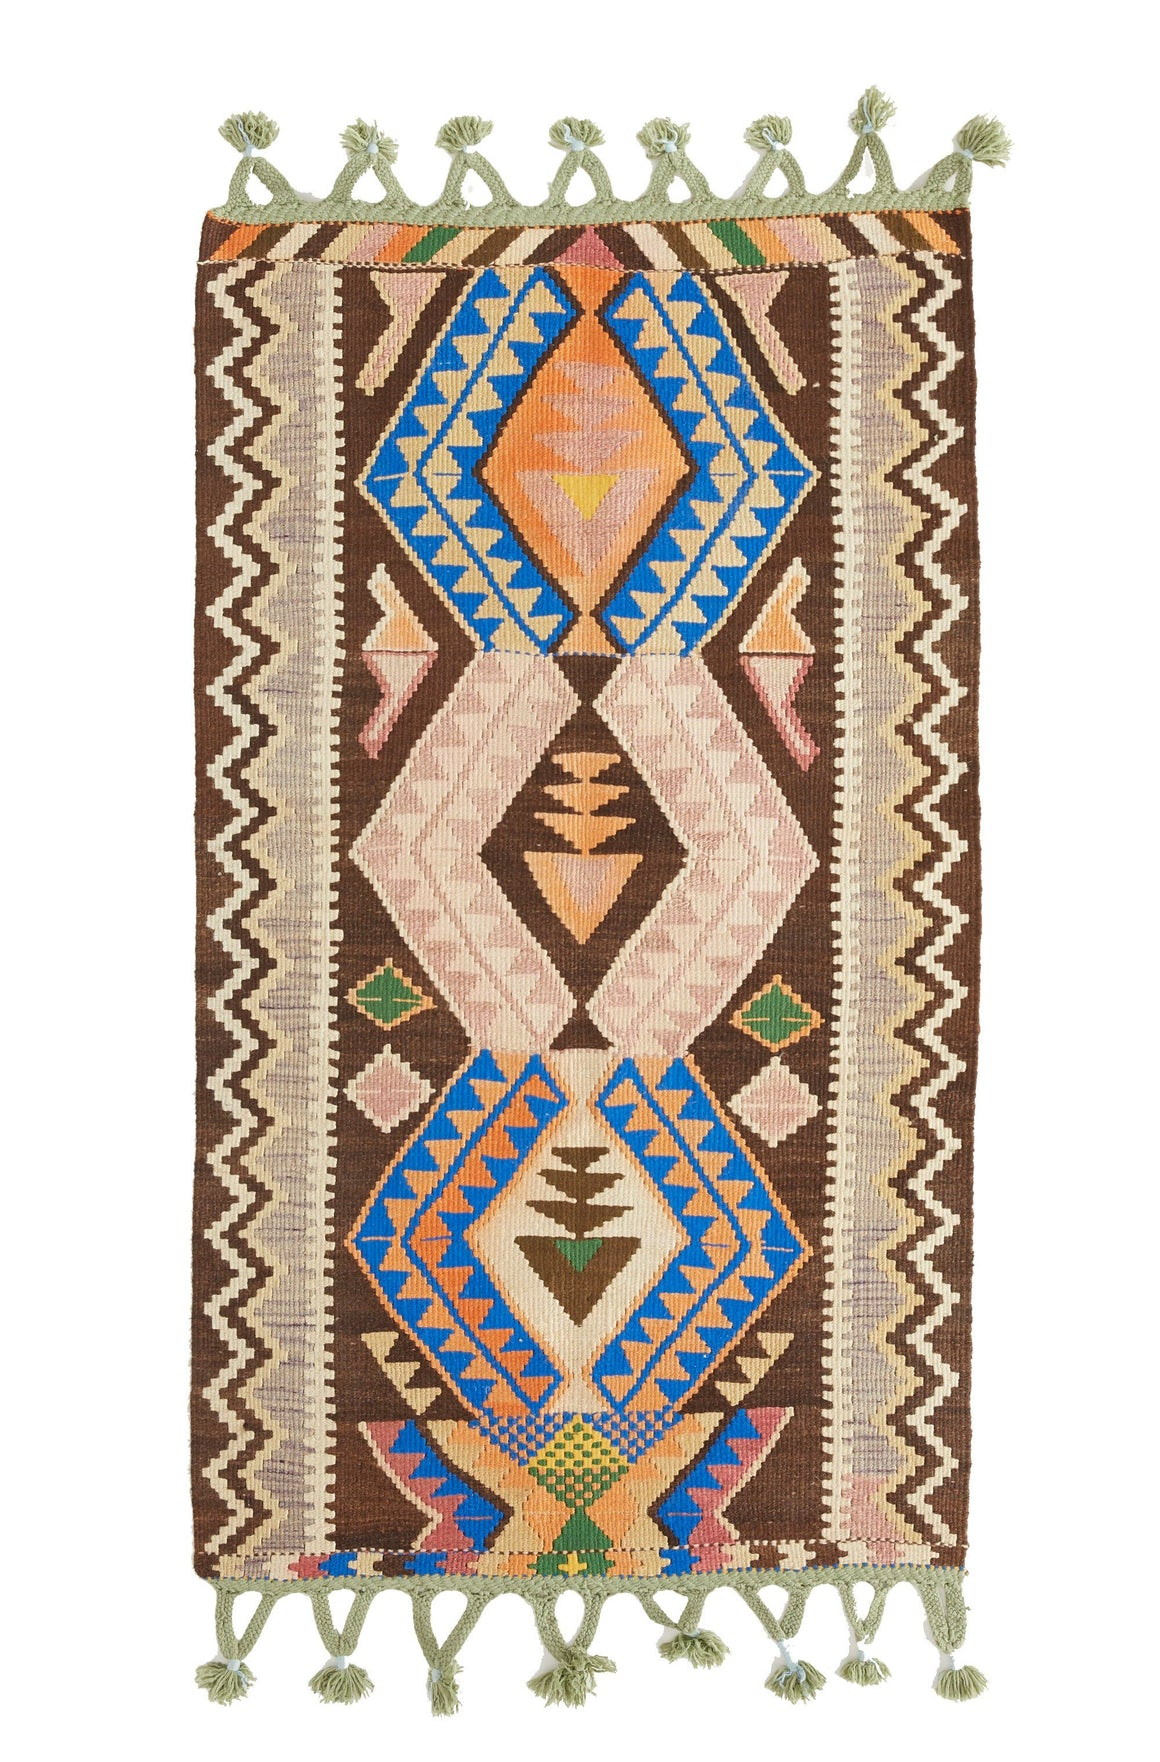 "'Delilah' - Small Turkish Vintage Kilim Rug - 2'6"" x 5'1"" - Canary Lane - Curated Textiles"